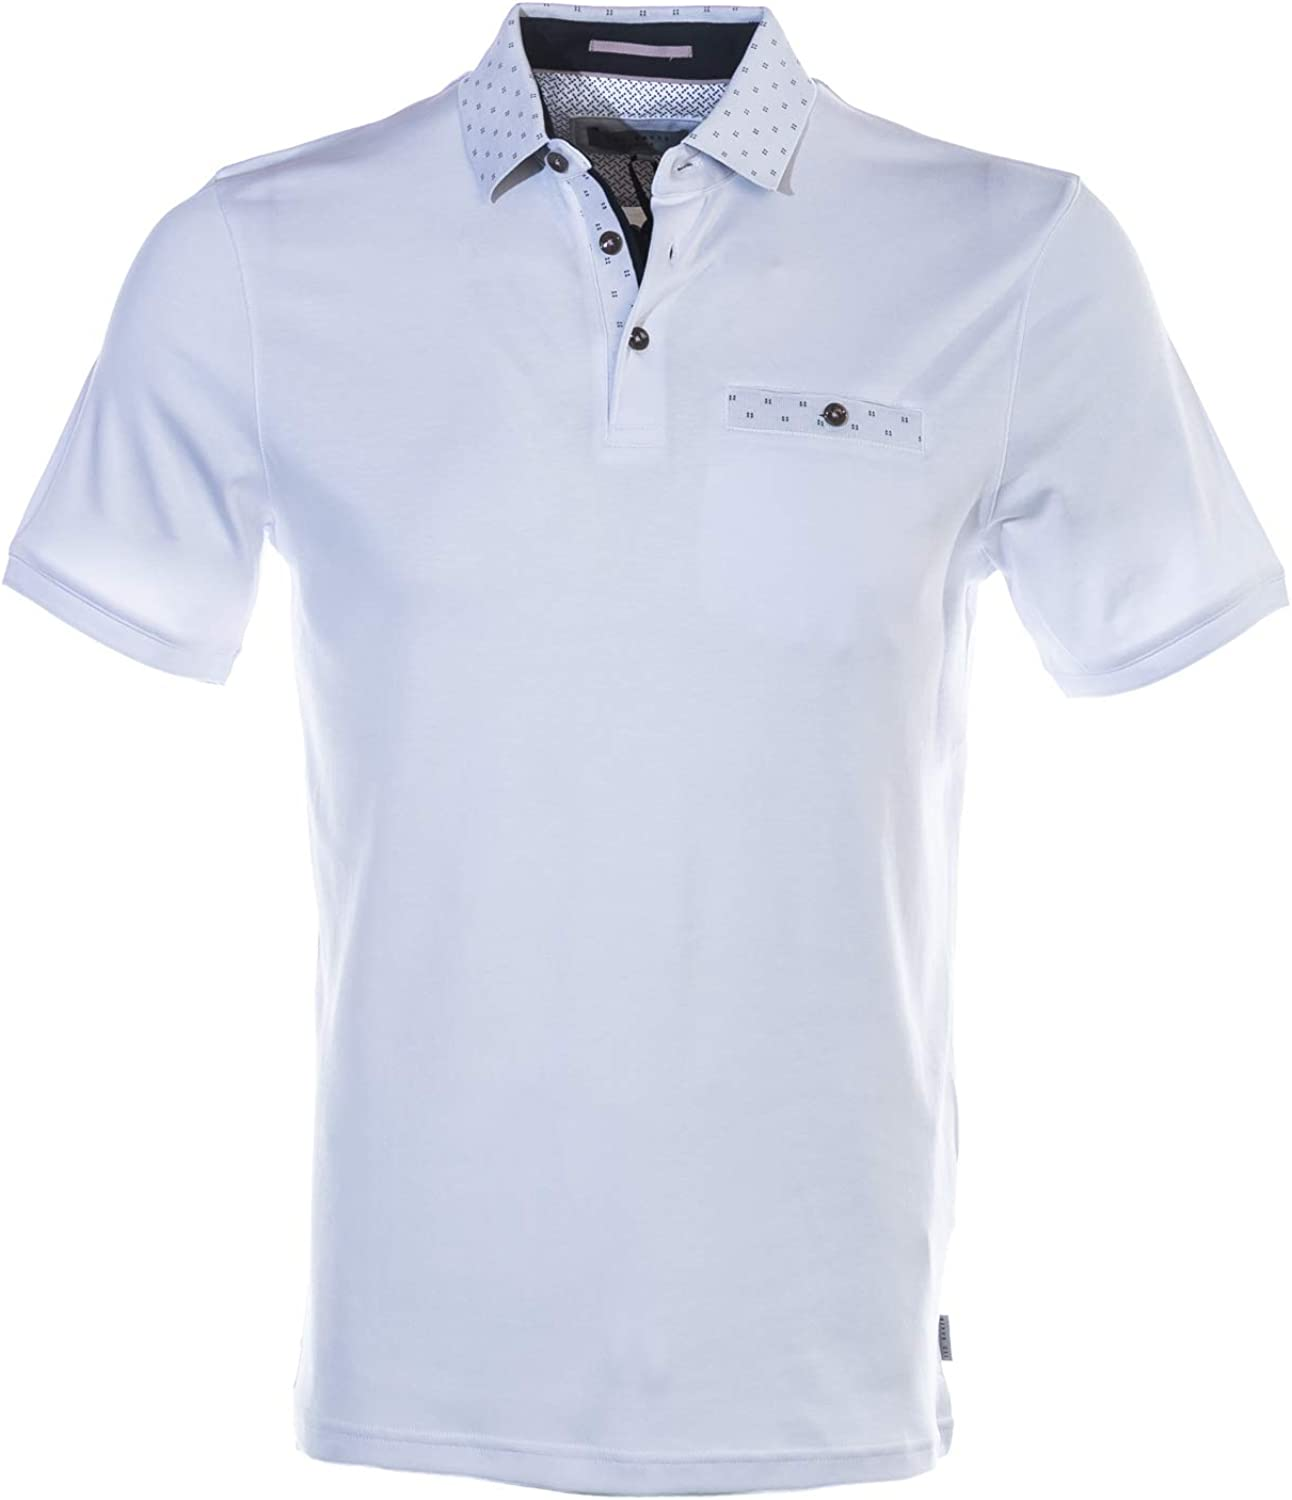 Ted Baker Critter Polo Shirt in White: Amazon.es: Ropa y accesorios